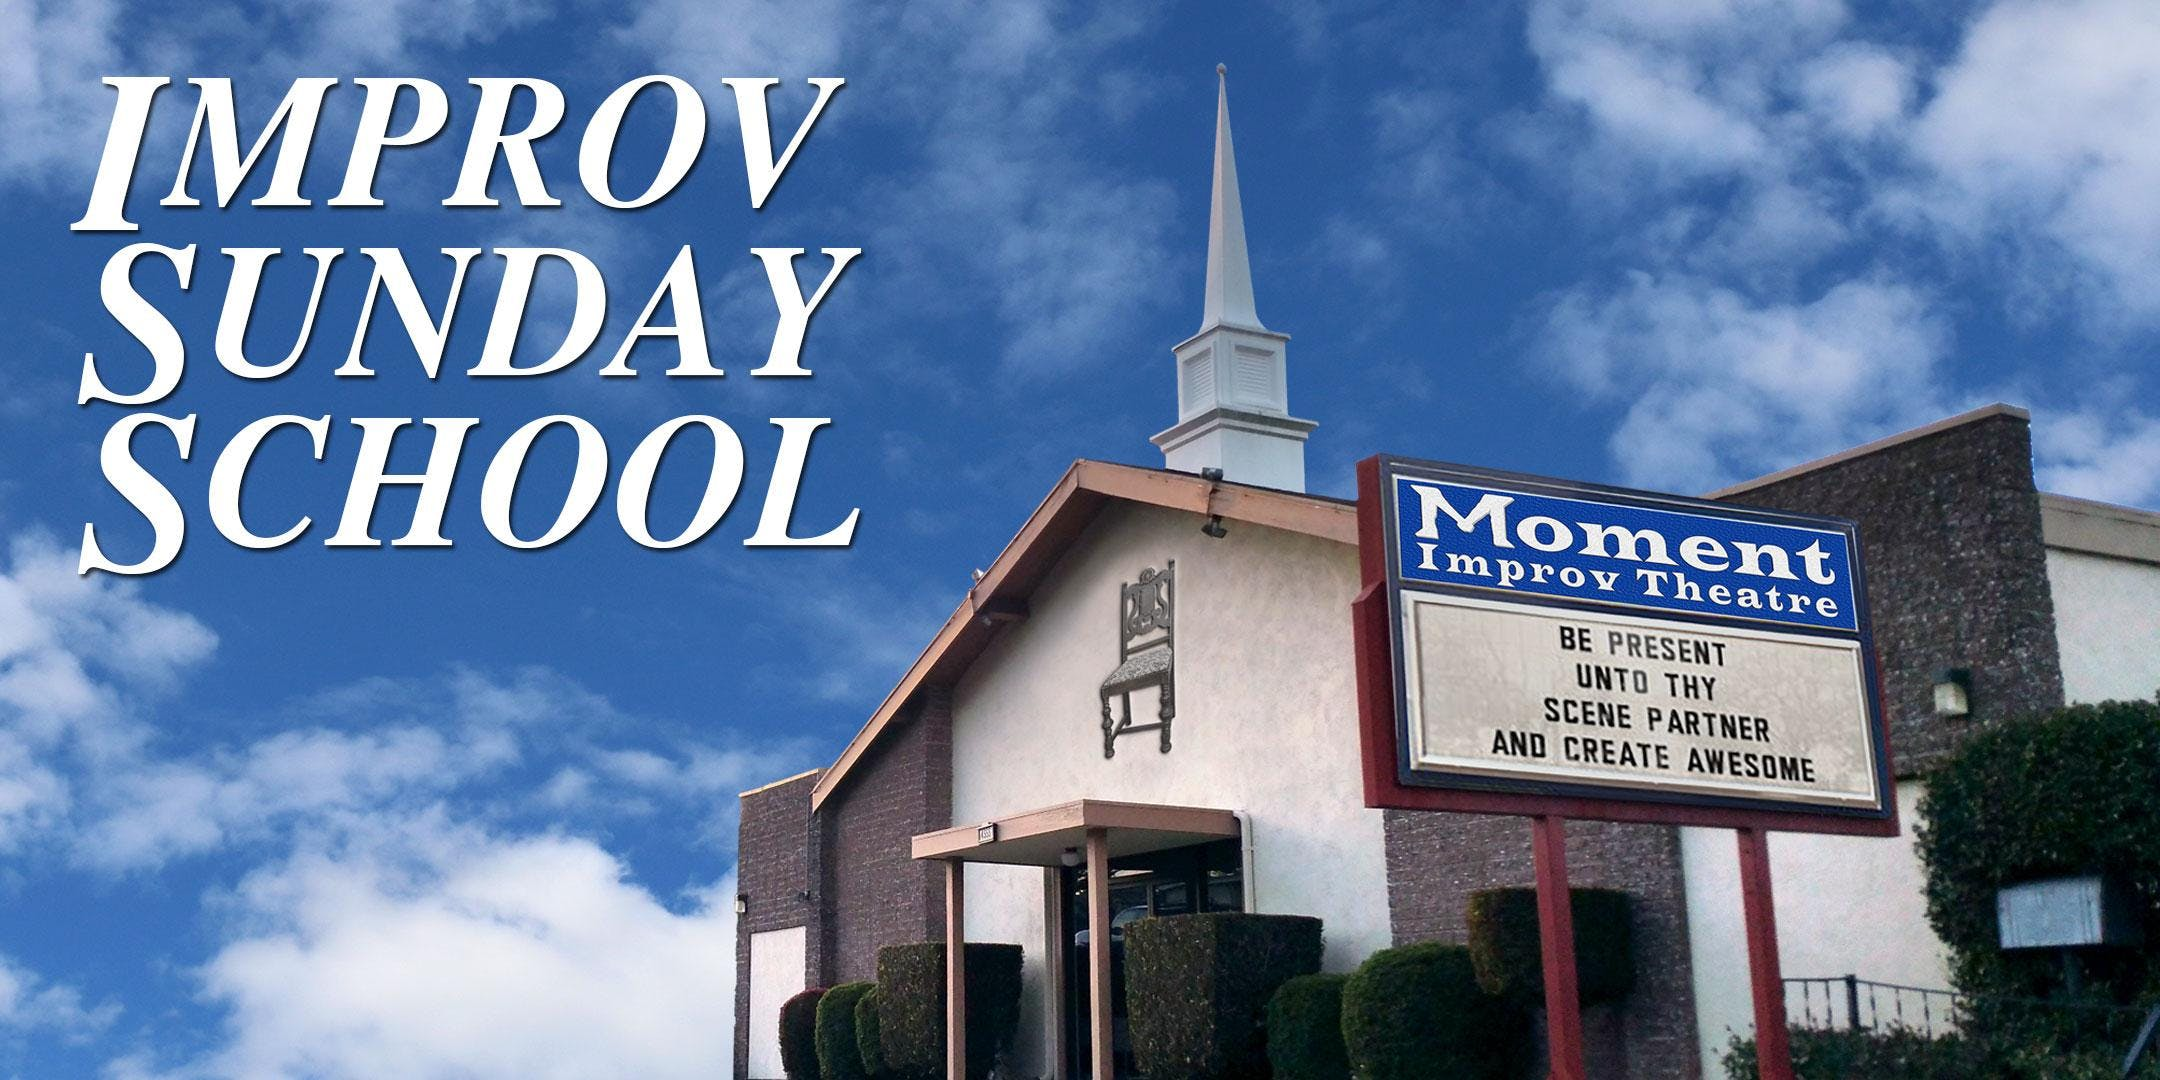 Improv Sunday School: The Weekly Workout